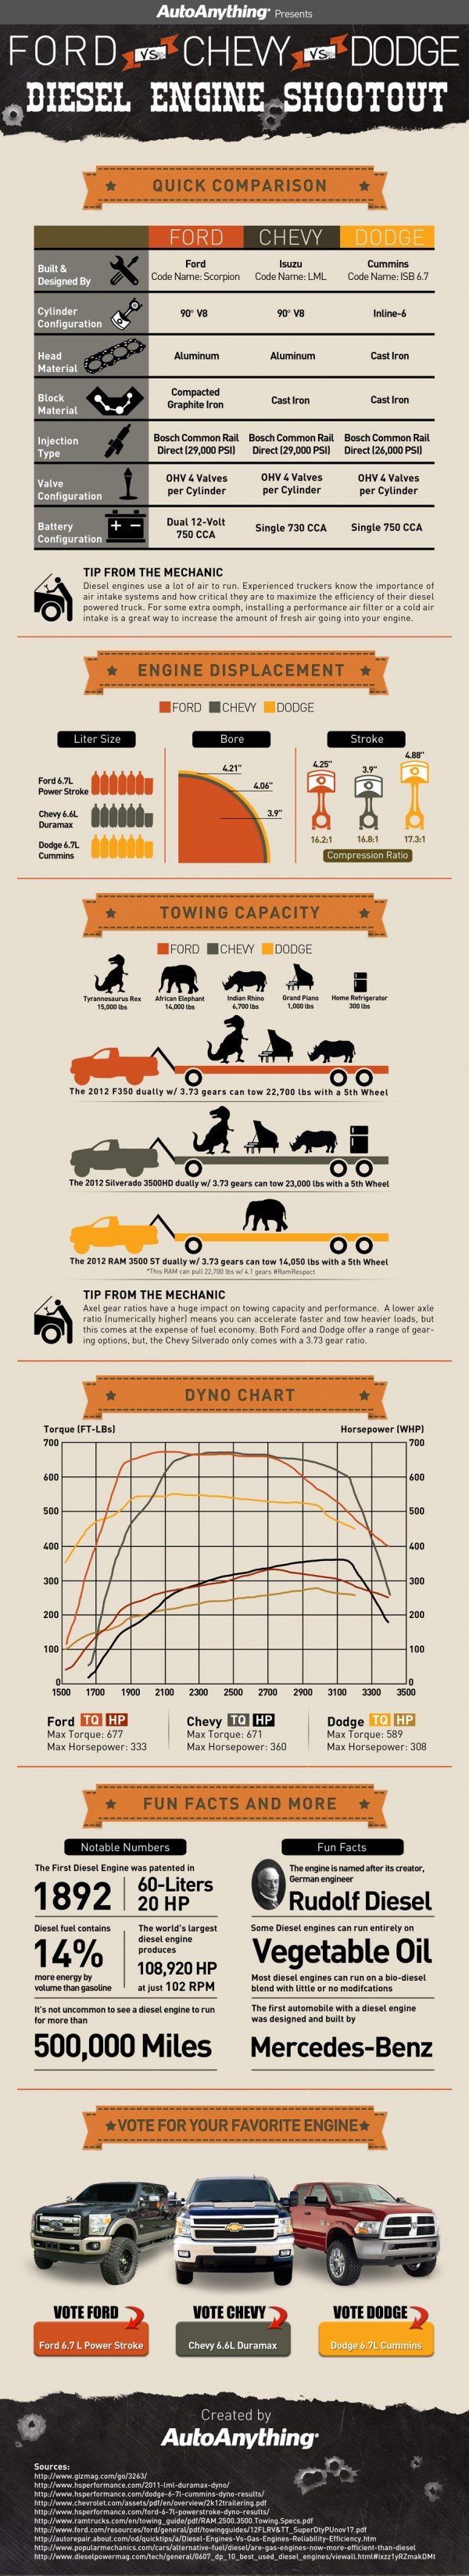 Diesel-Engine-Shootout-Infographic-Ford-Chevy-Dodge